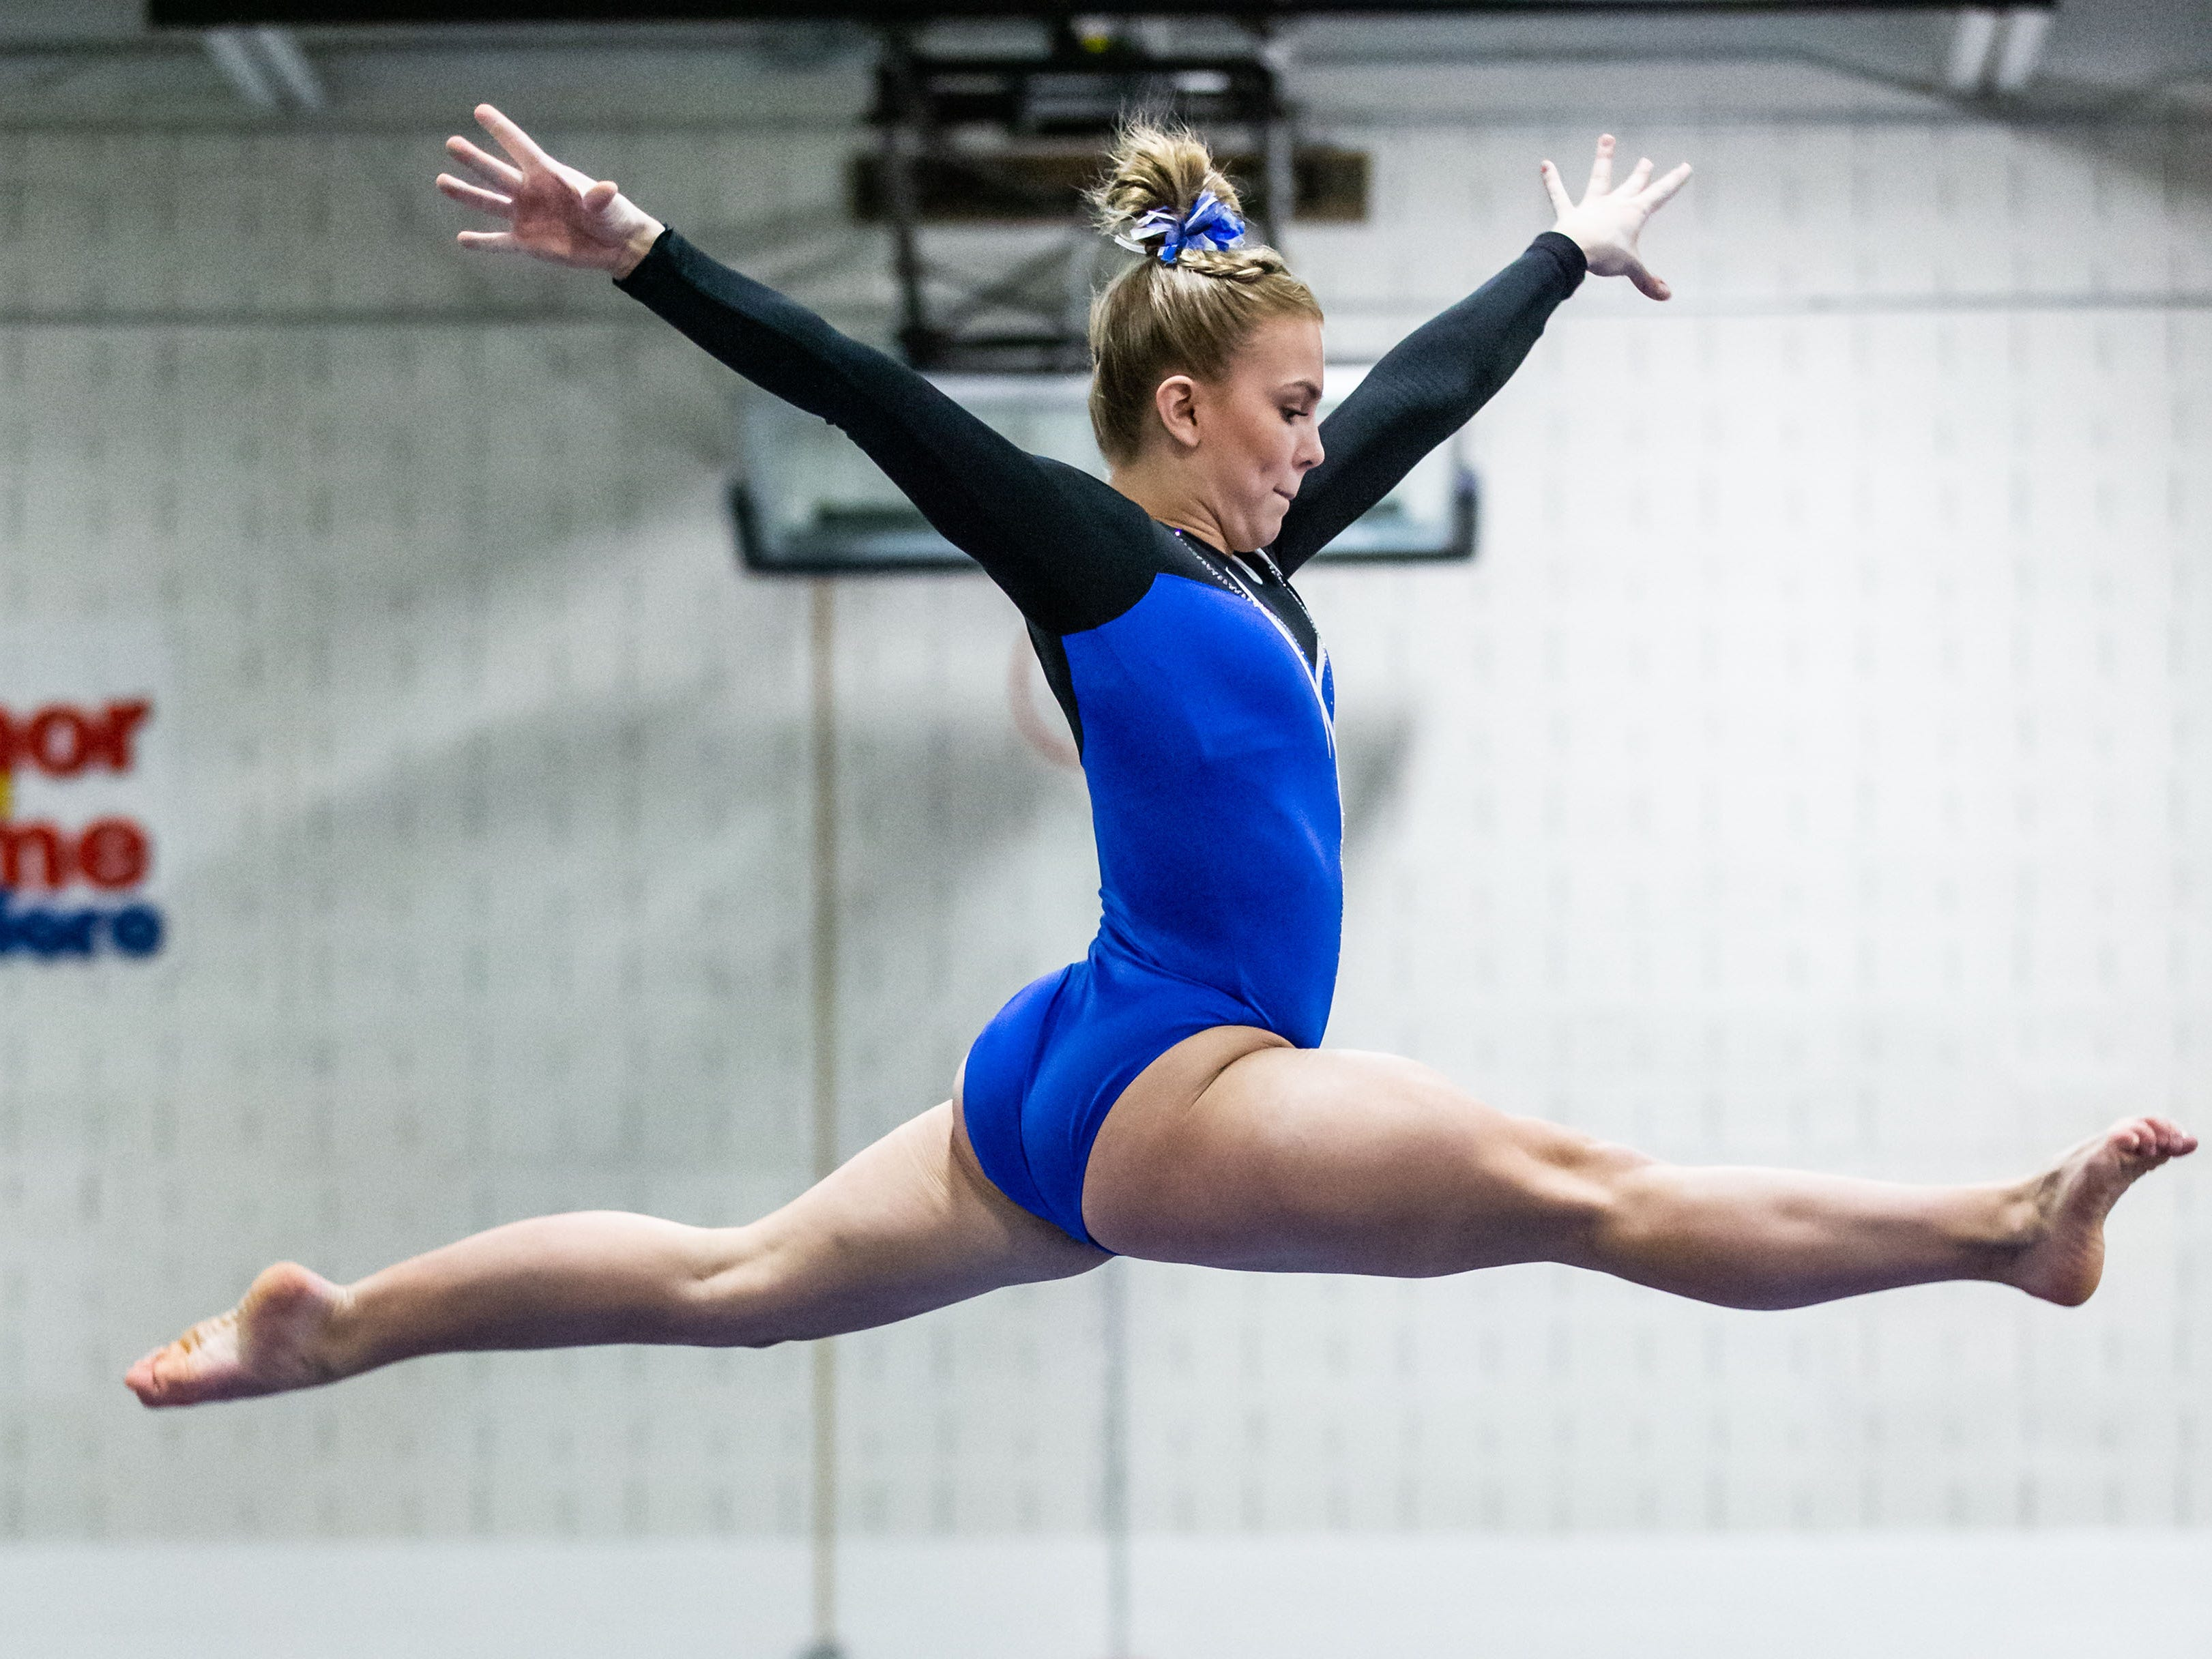 Nicolet gymnast Abbe Hansen competes on the beam during the meet at home against Whitefish Bay on Thursday, Jan. 3, 2019. Hansen placed third in the event with a score of 8.60.